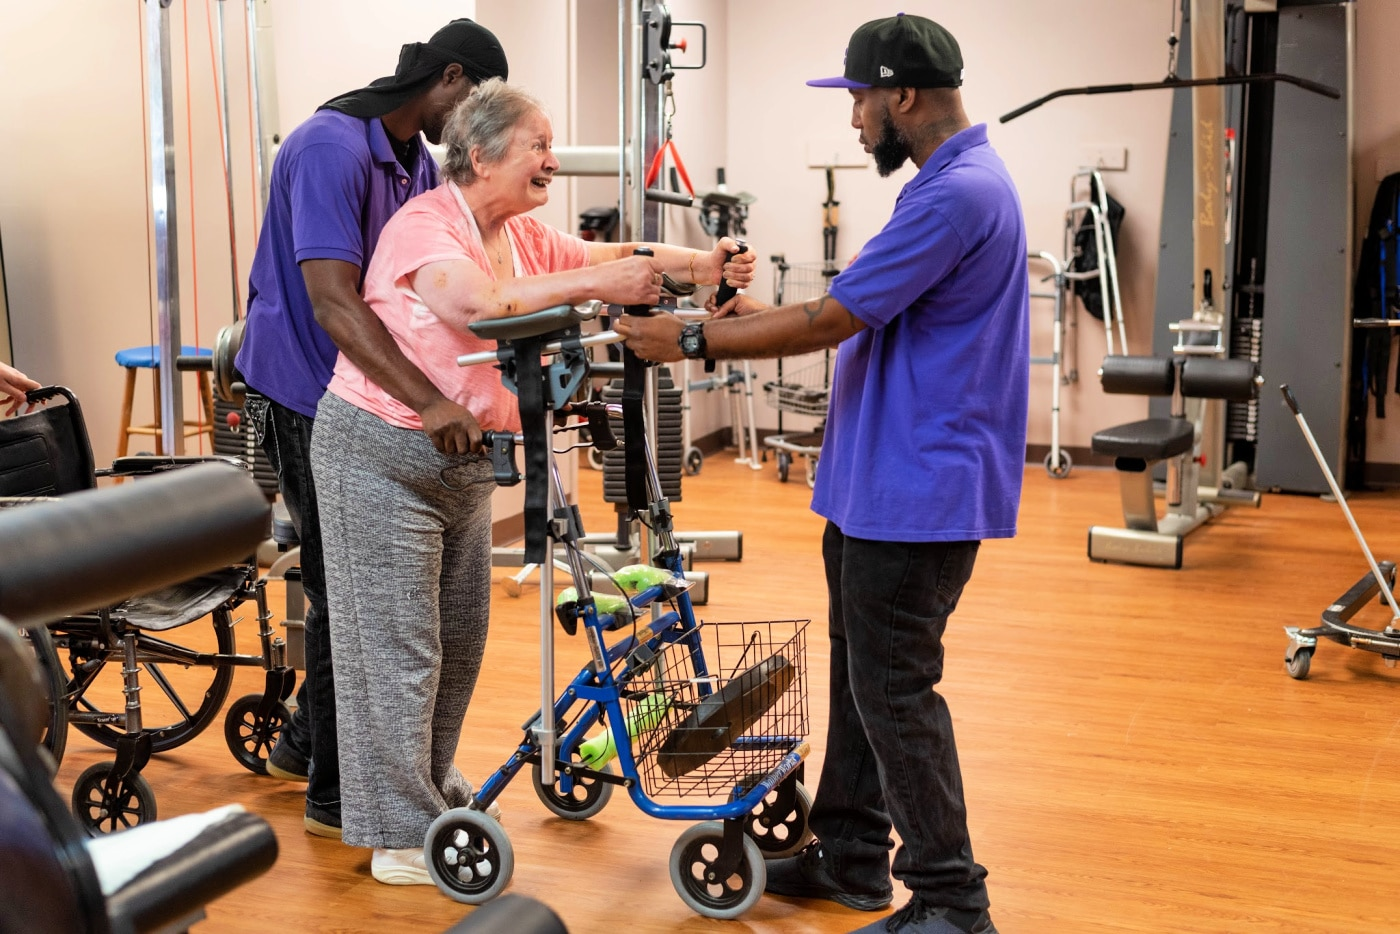 Learn how Moving With Hope can assist with your physical therapy needs.